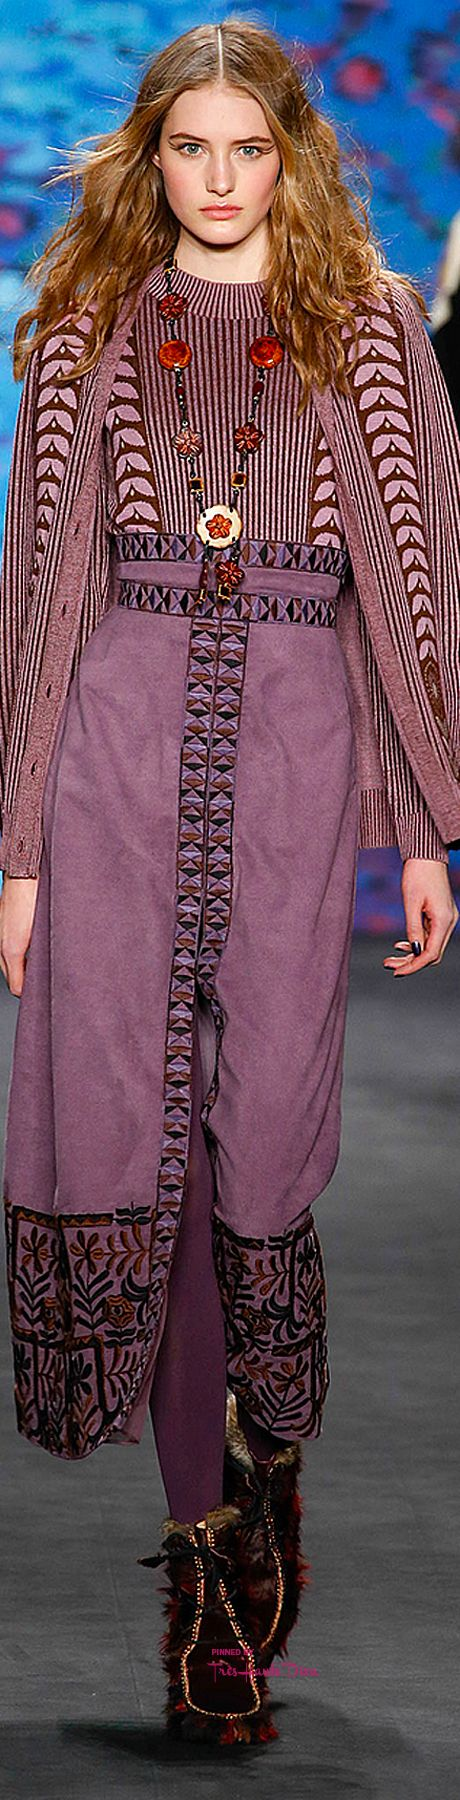 New York Fashion Week.          Anna Sui.          Fall 2015.          Ready-To-Wear.